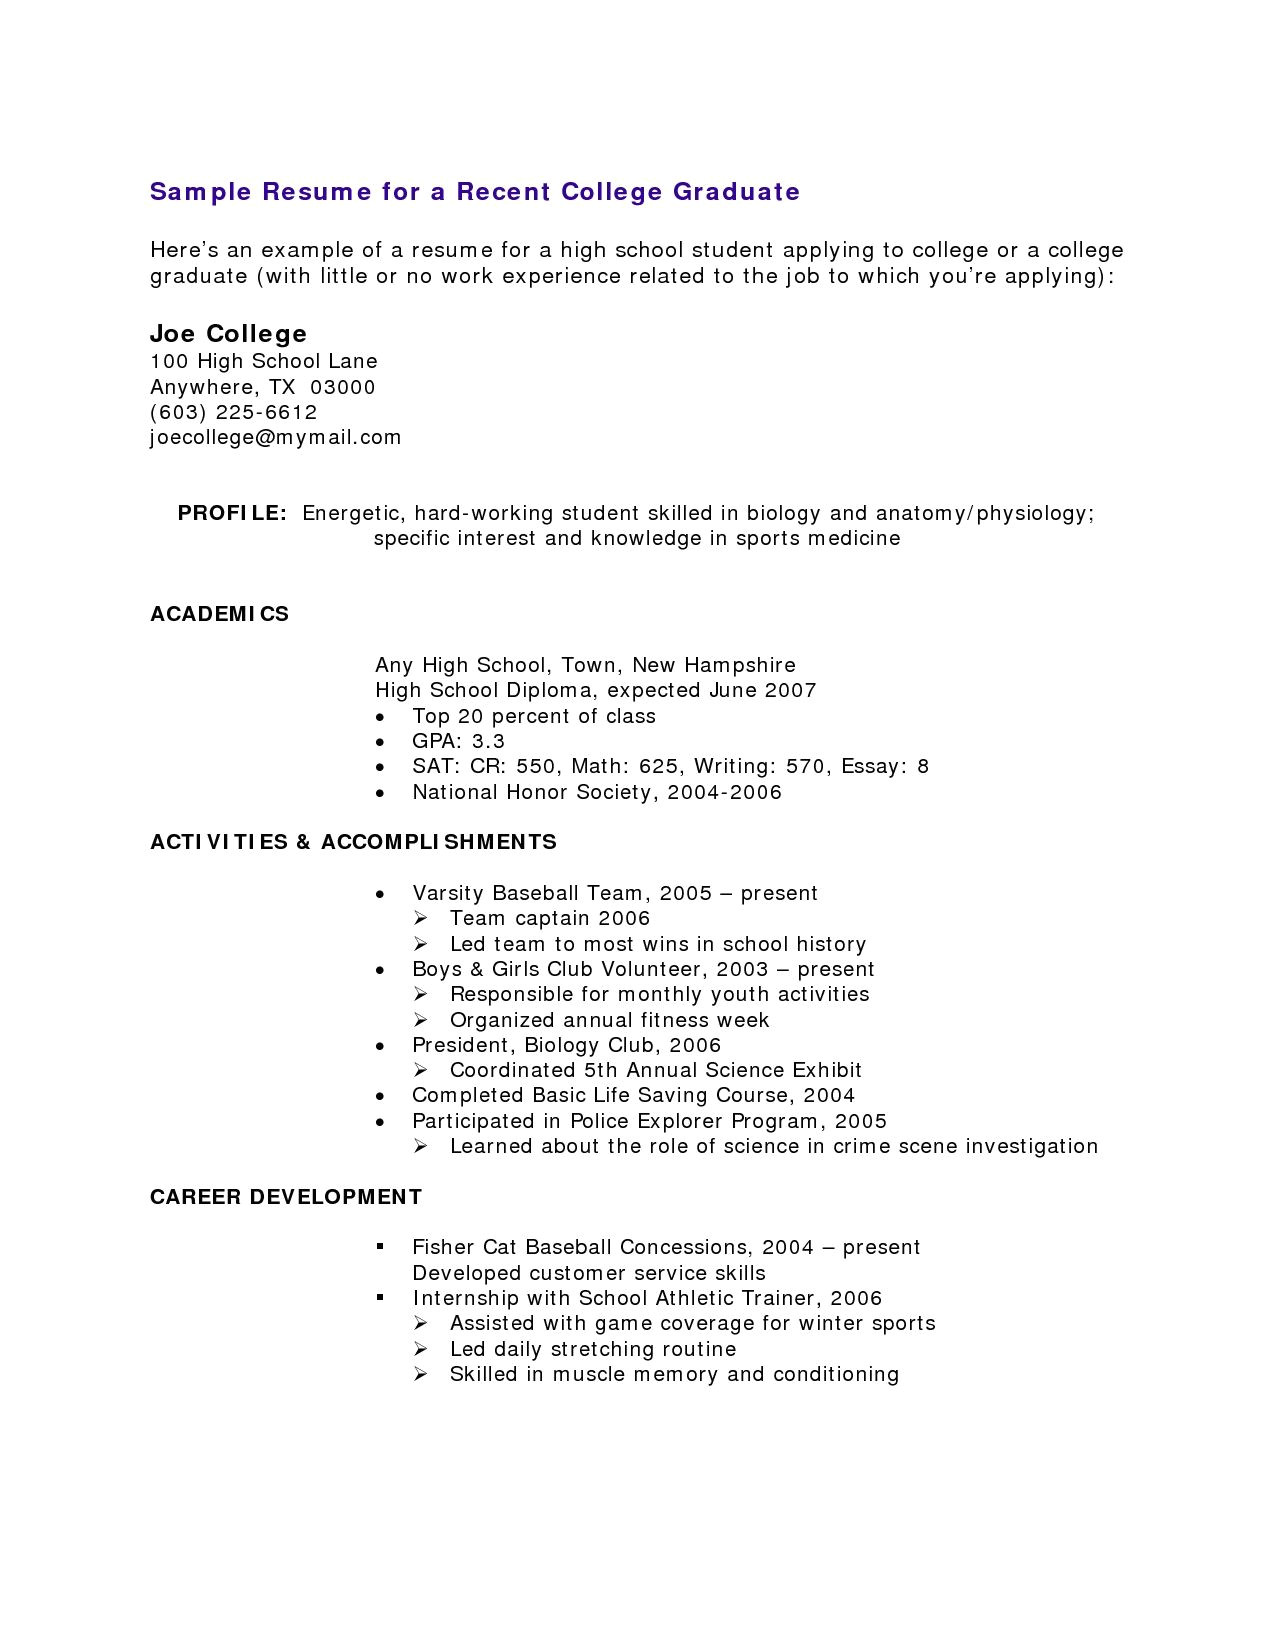 Sample Resumes for High School Students with No Work Experience High School Student Resume with No Work Experience Resume